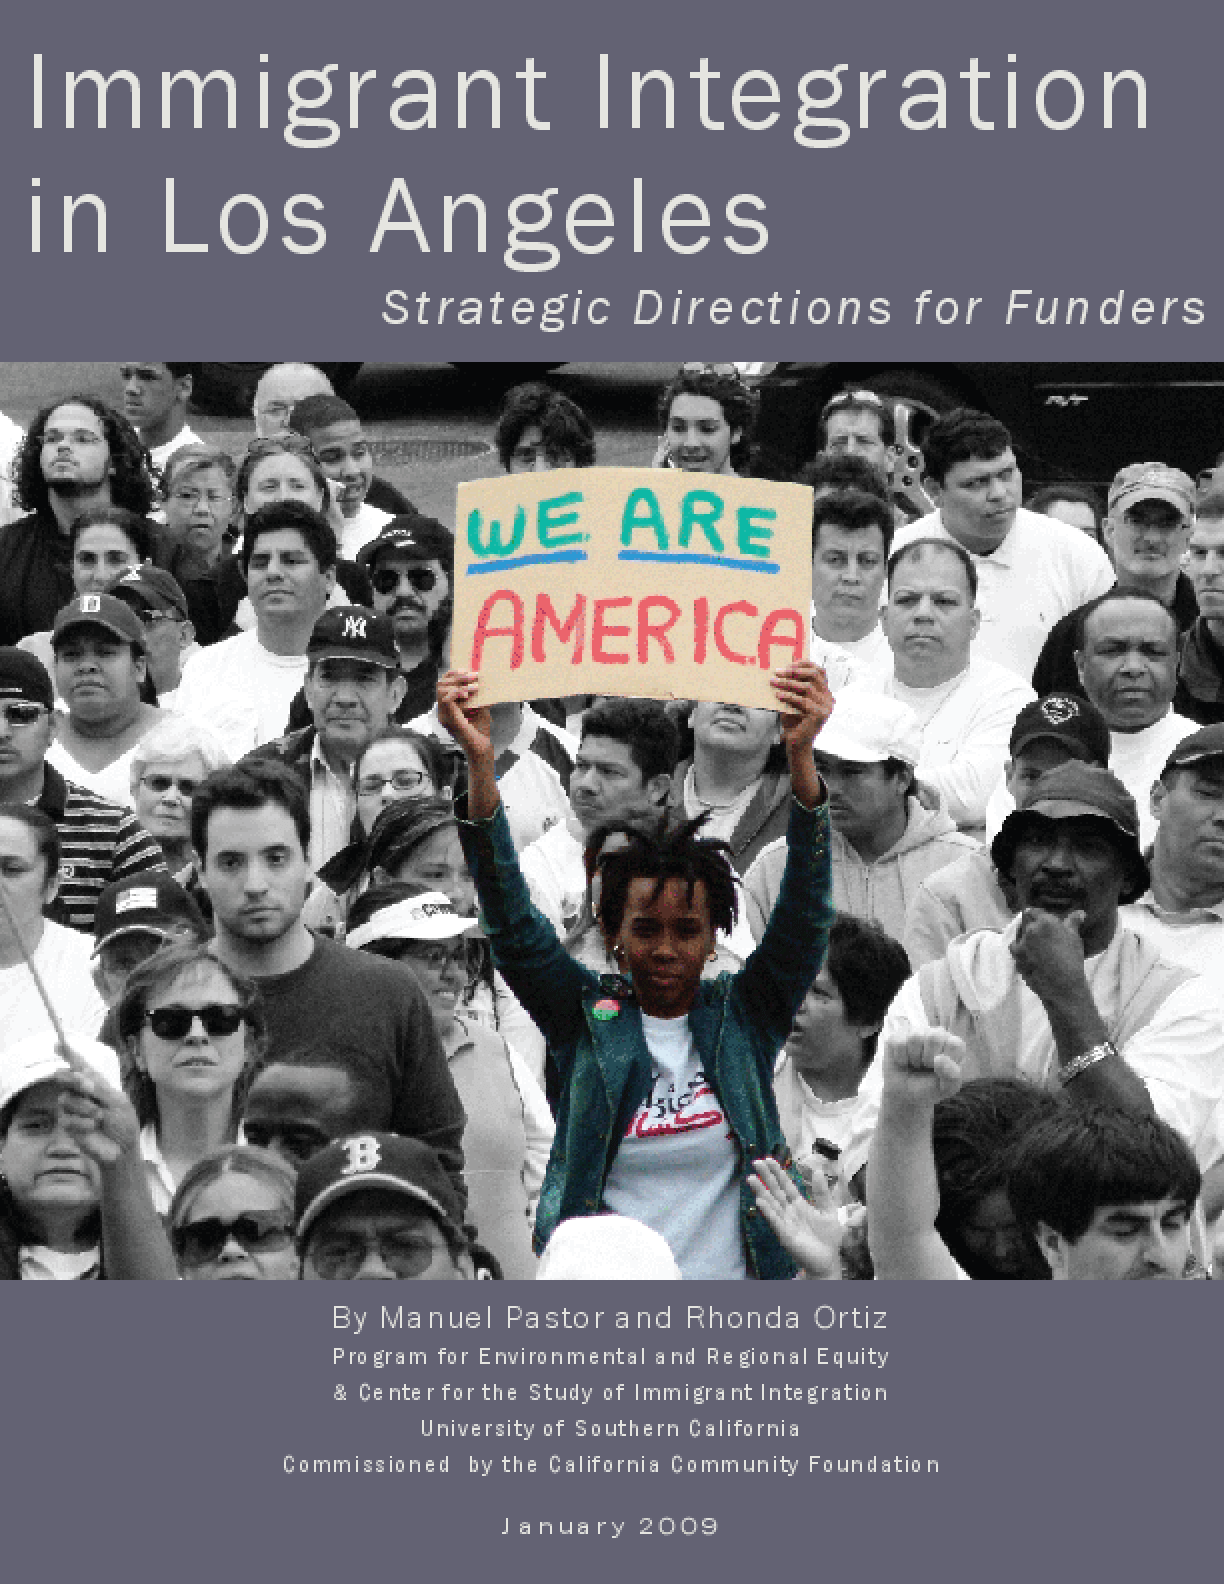 Immigrant Integration in Los Angeles: Strategic Directions for Funders